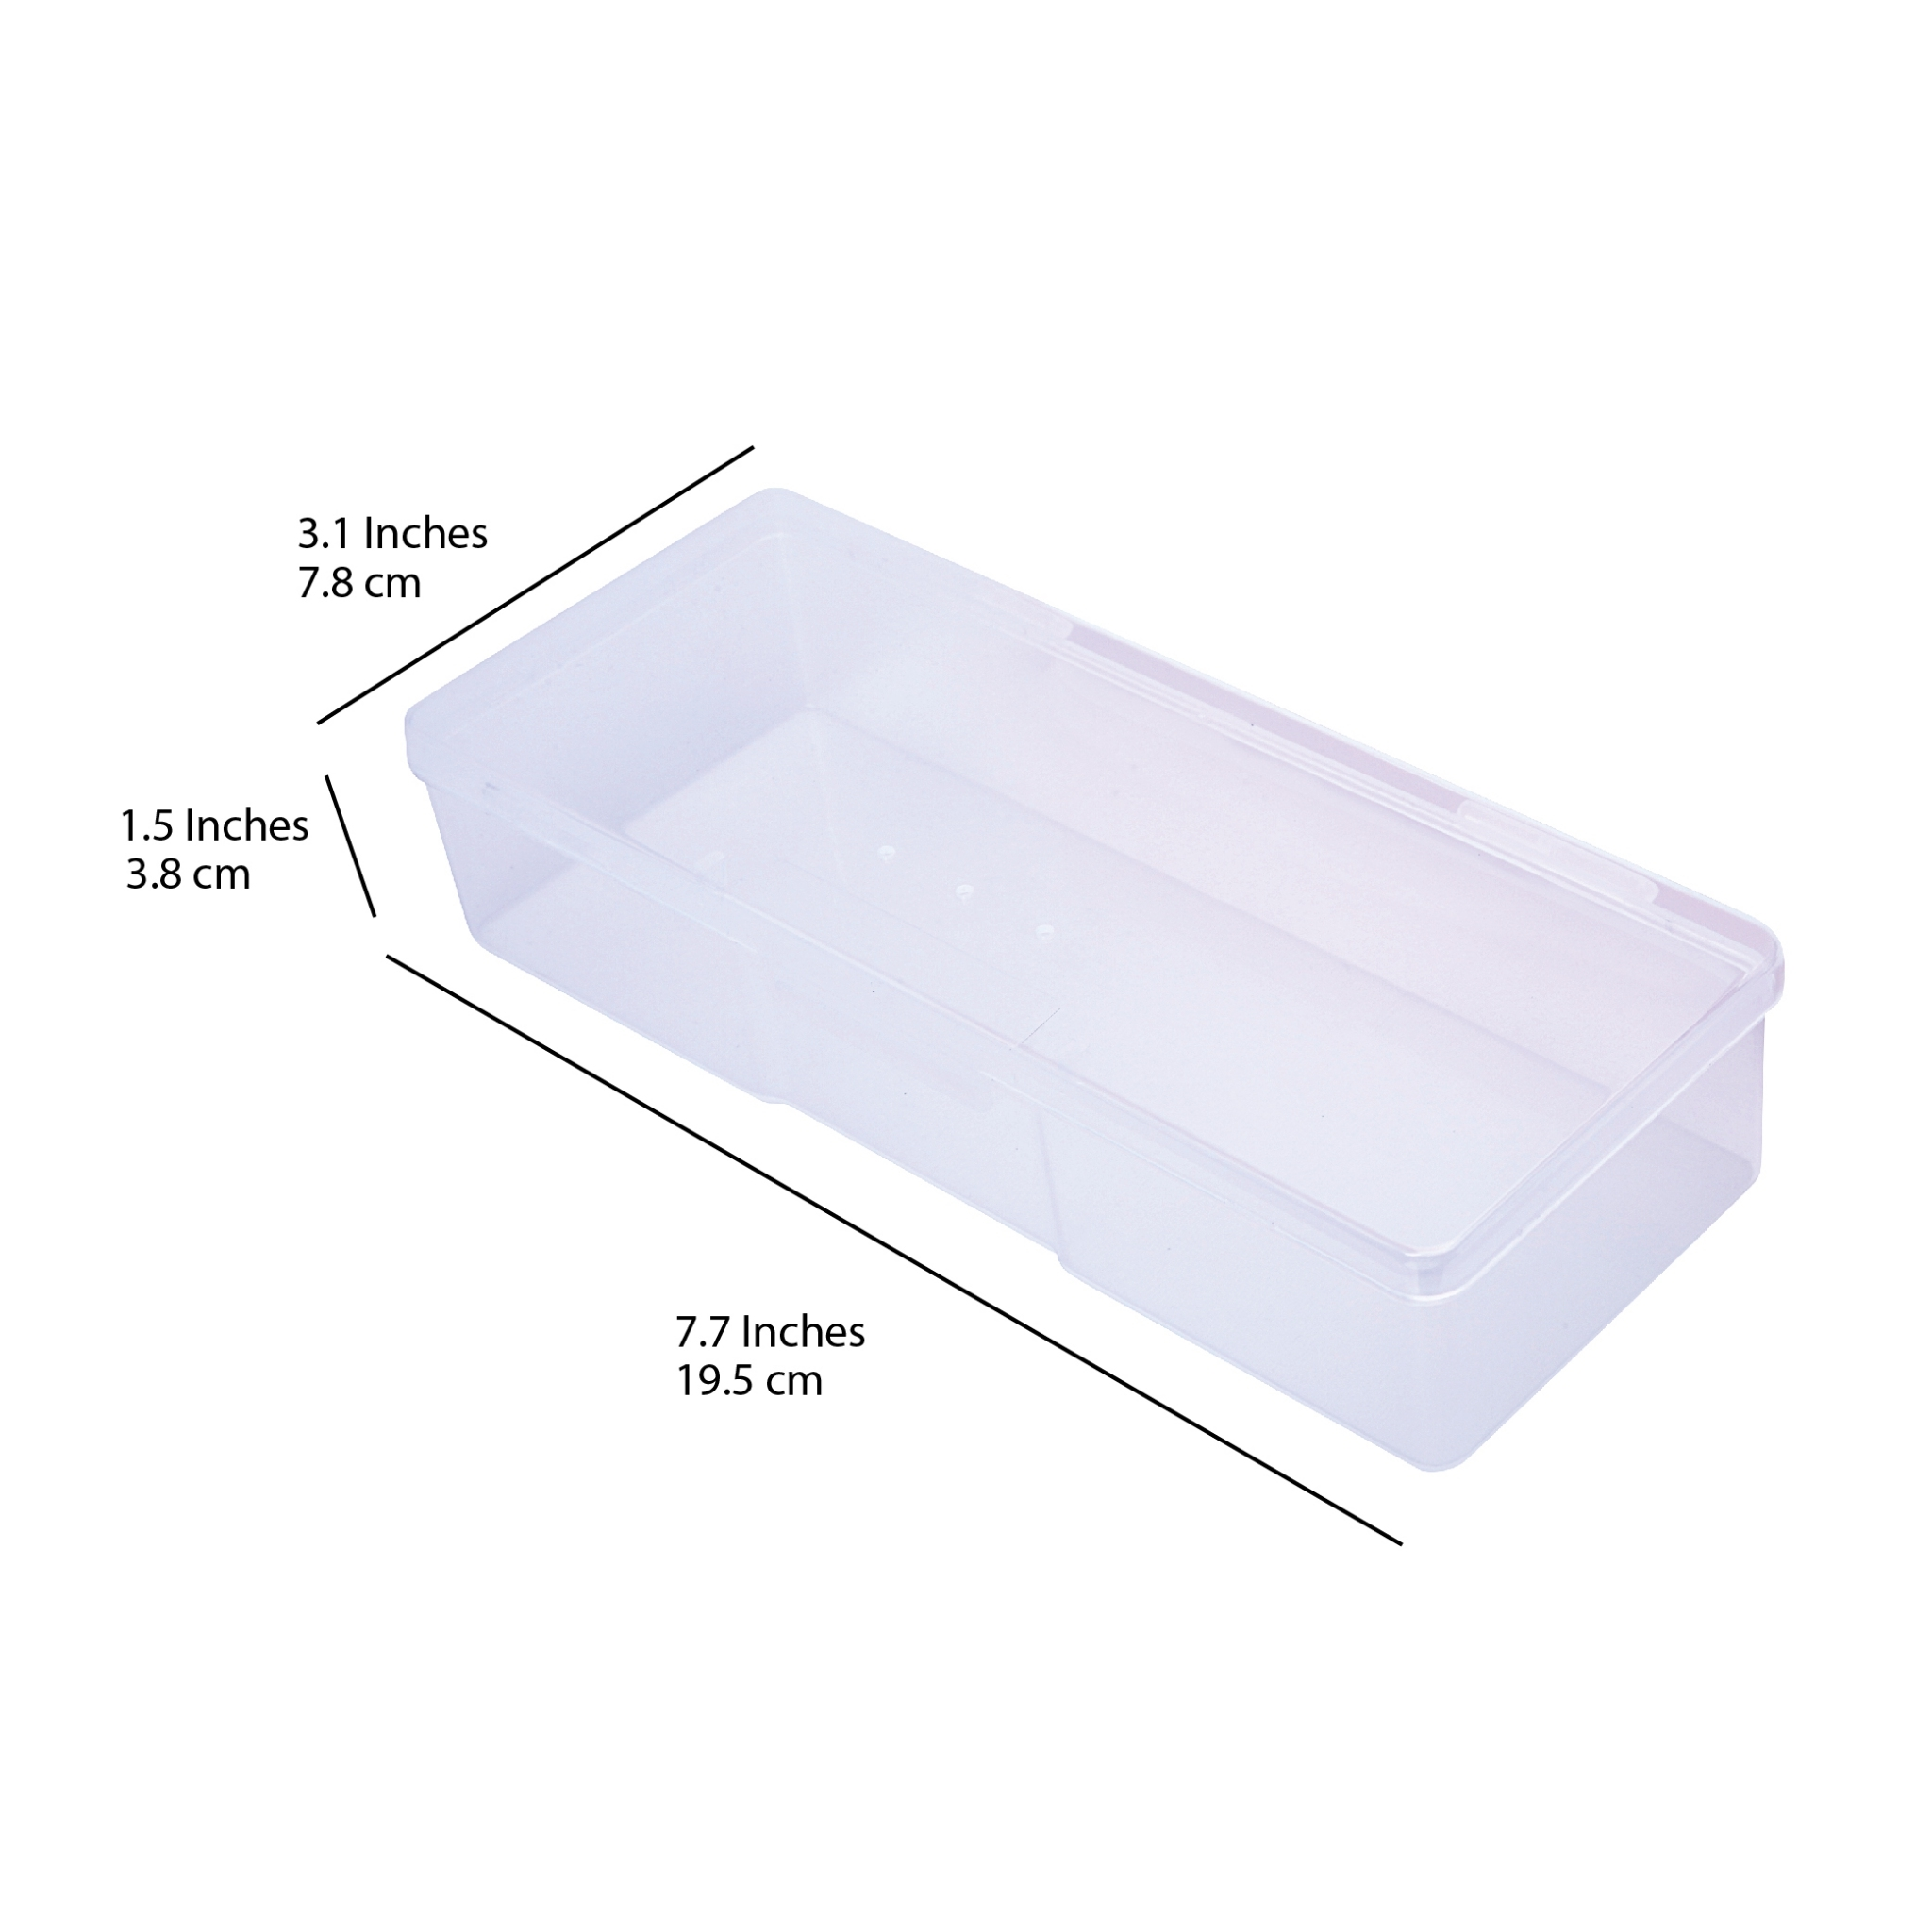 26049 - Large Personal#Storage Box#200 pcs/case